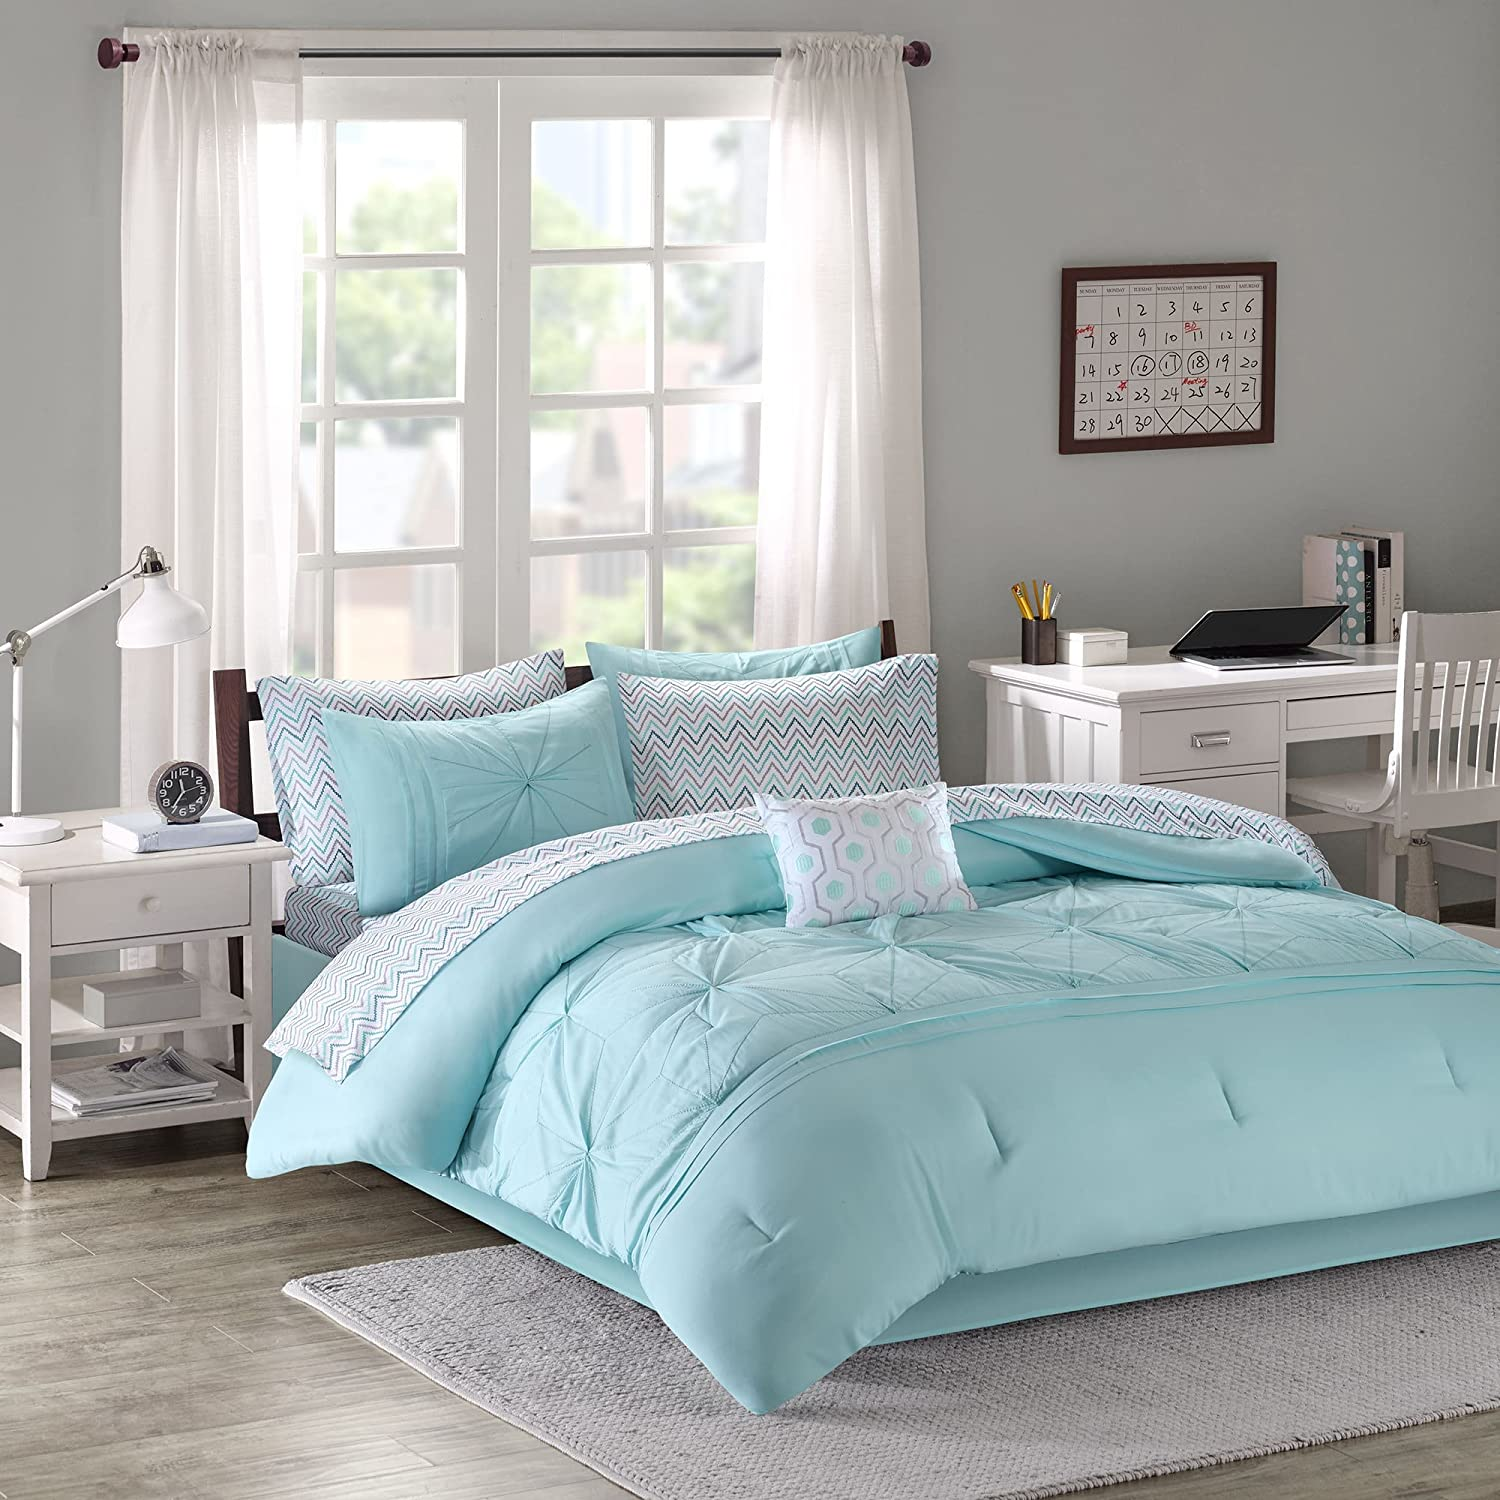 Comforter Sets For Teen Girls Twin Full Queen Kids Bedding Aqua Light Blue  Gray Bed In A Bag Perfect For Home Bedrooms or Dorm Rooms Bundle Includes  ...